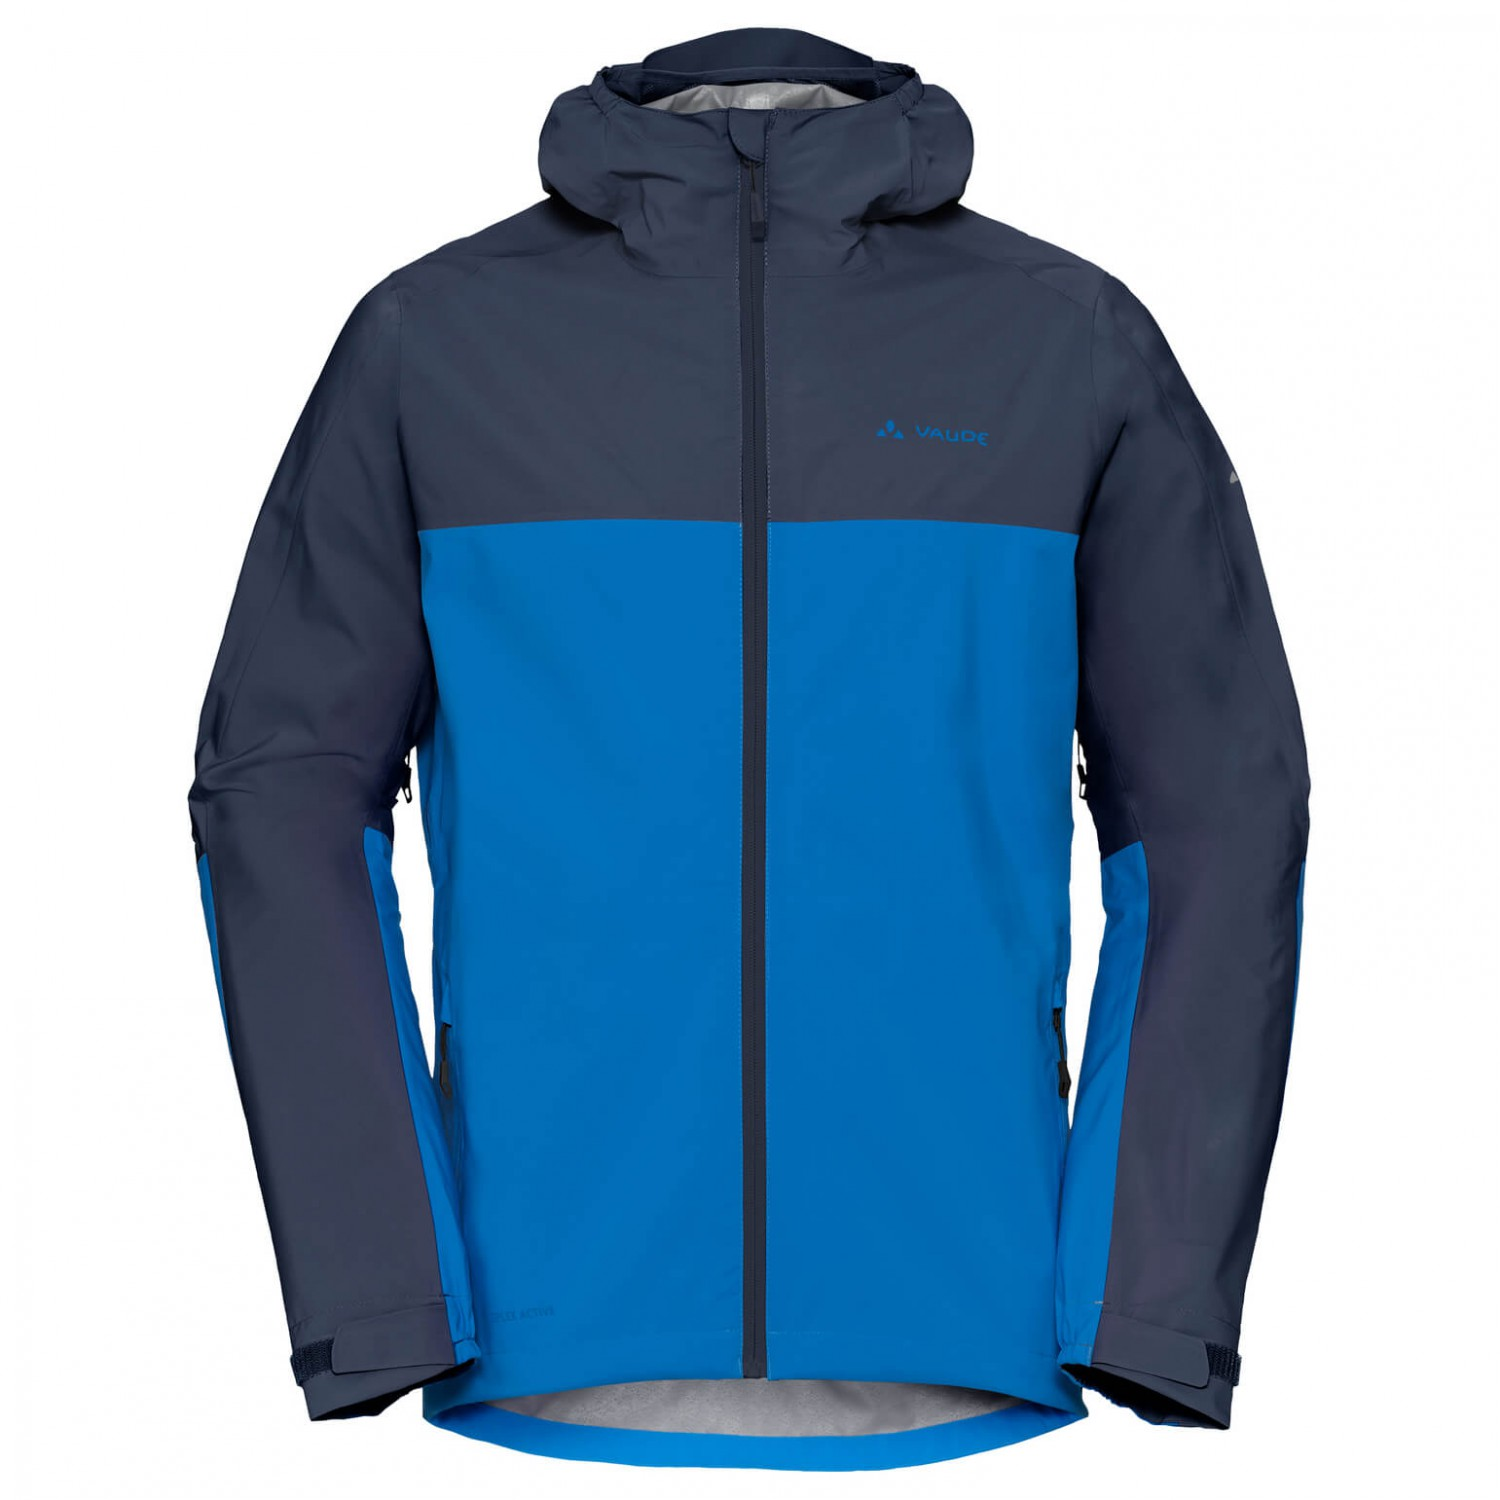 size 40 480ea e711b Vaude - Moab Rain Jacket - Cycling jacket - Radiate Blue | S